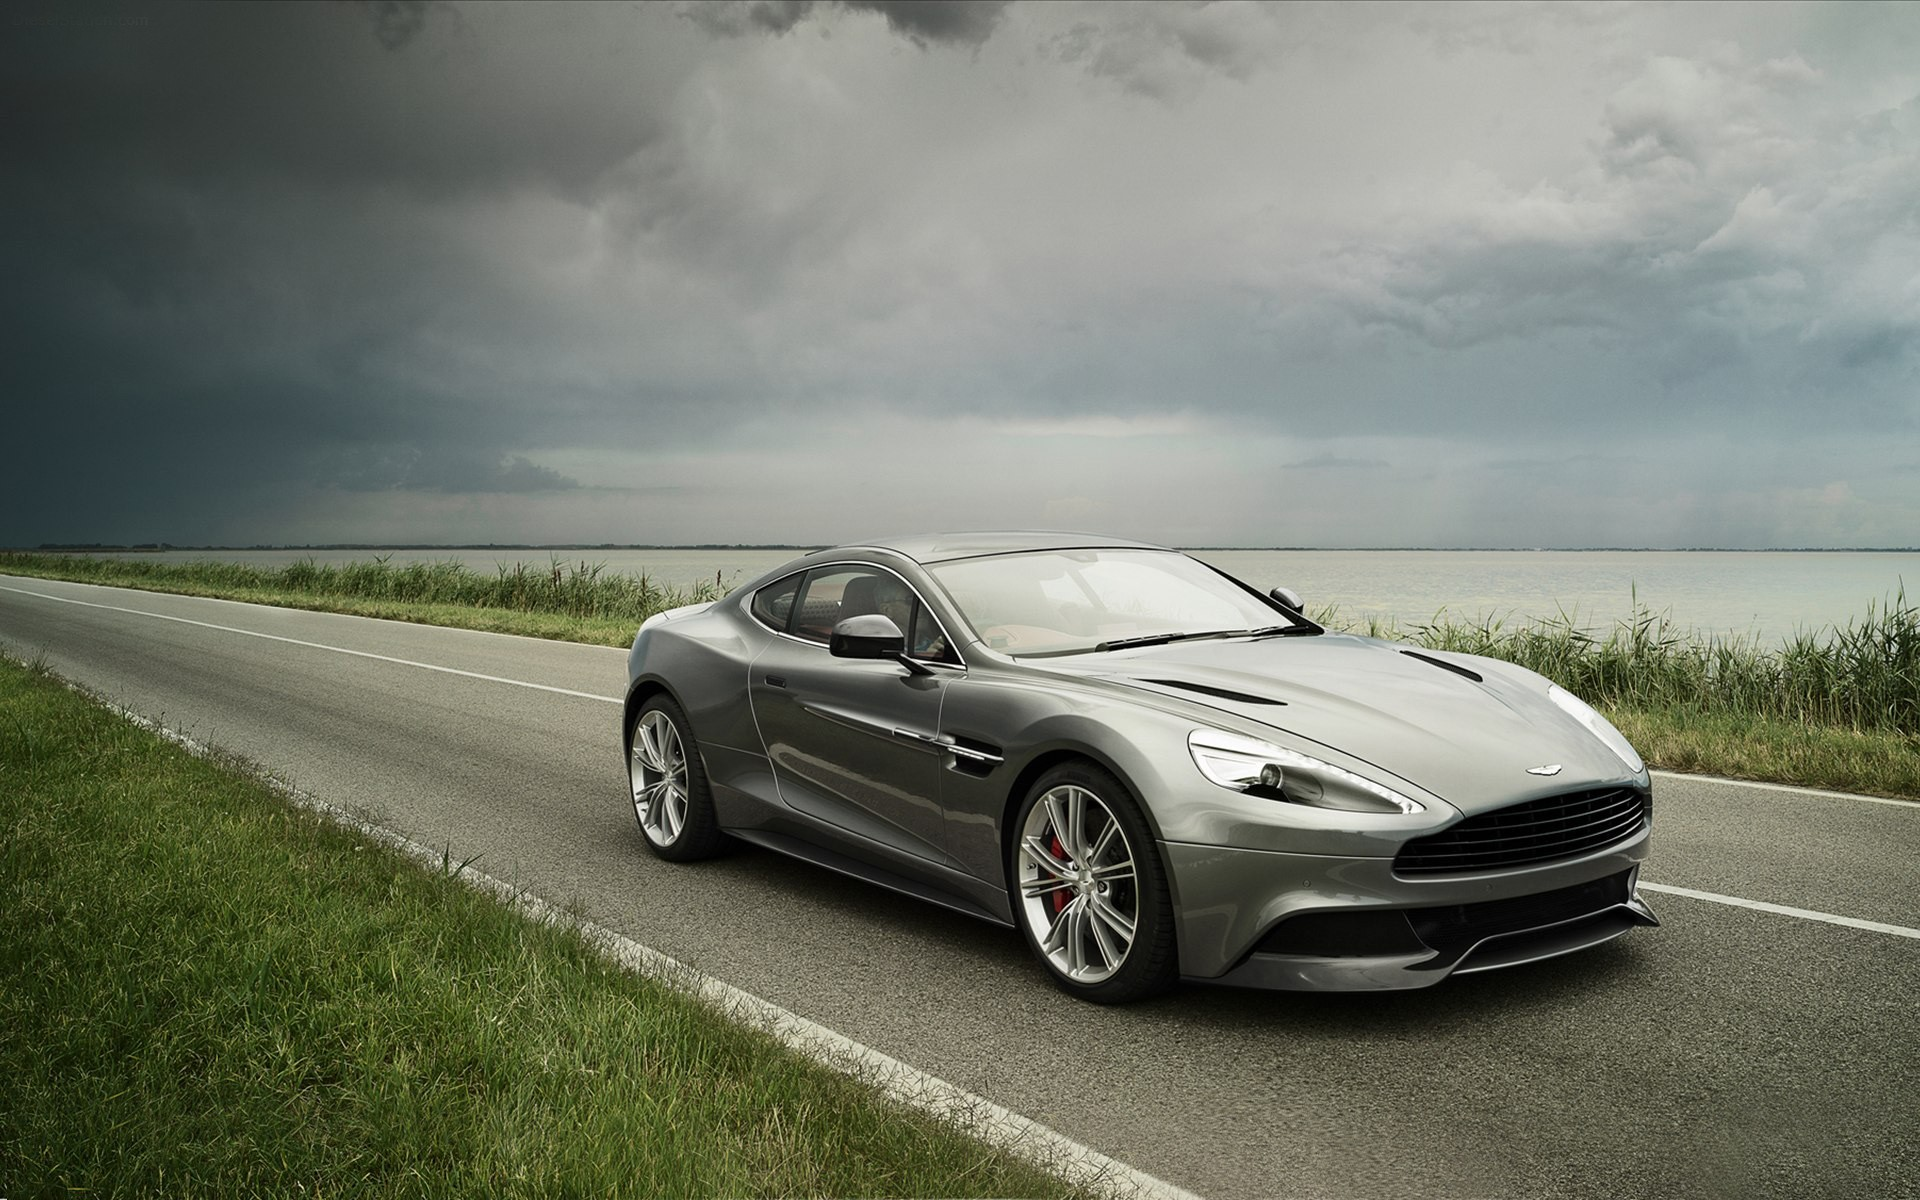 2013 Aston Martin Vanquish 3 Wallpaper Hd Car Wallpapers